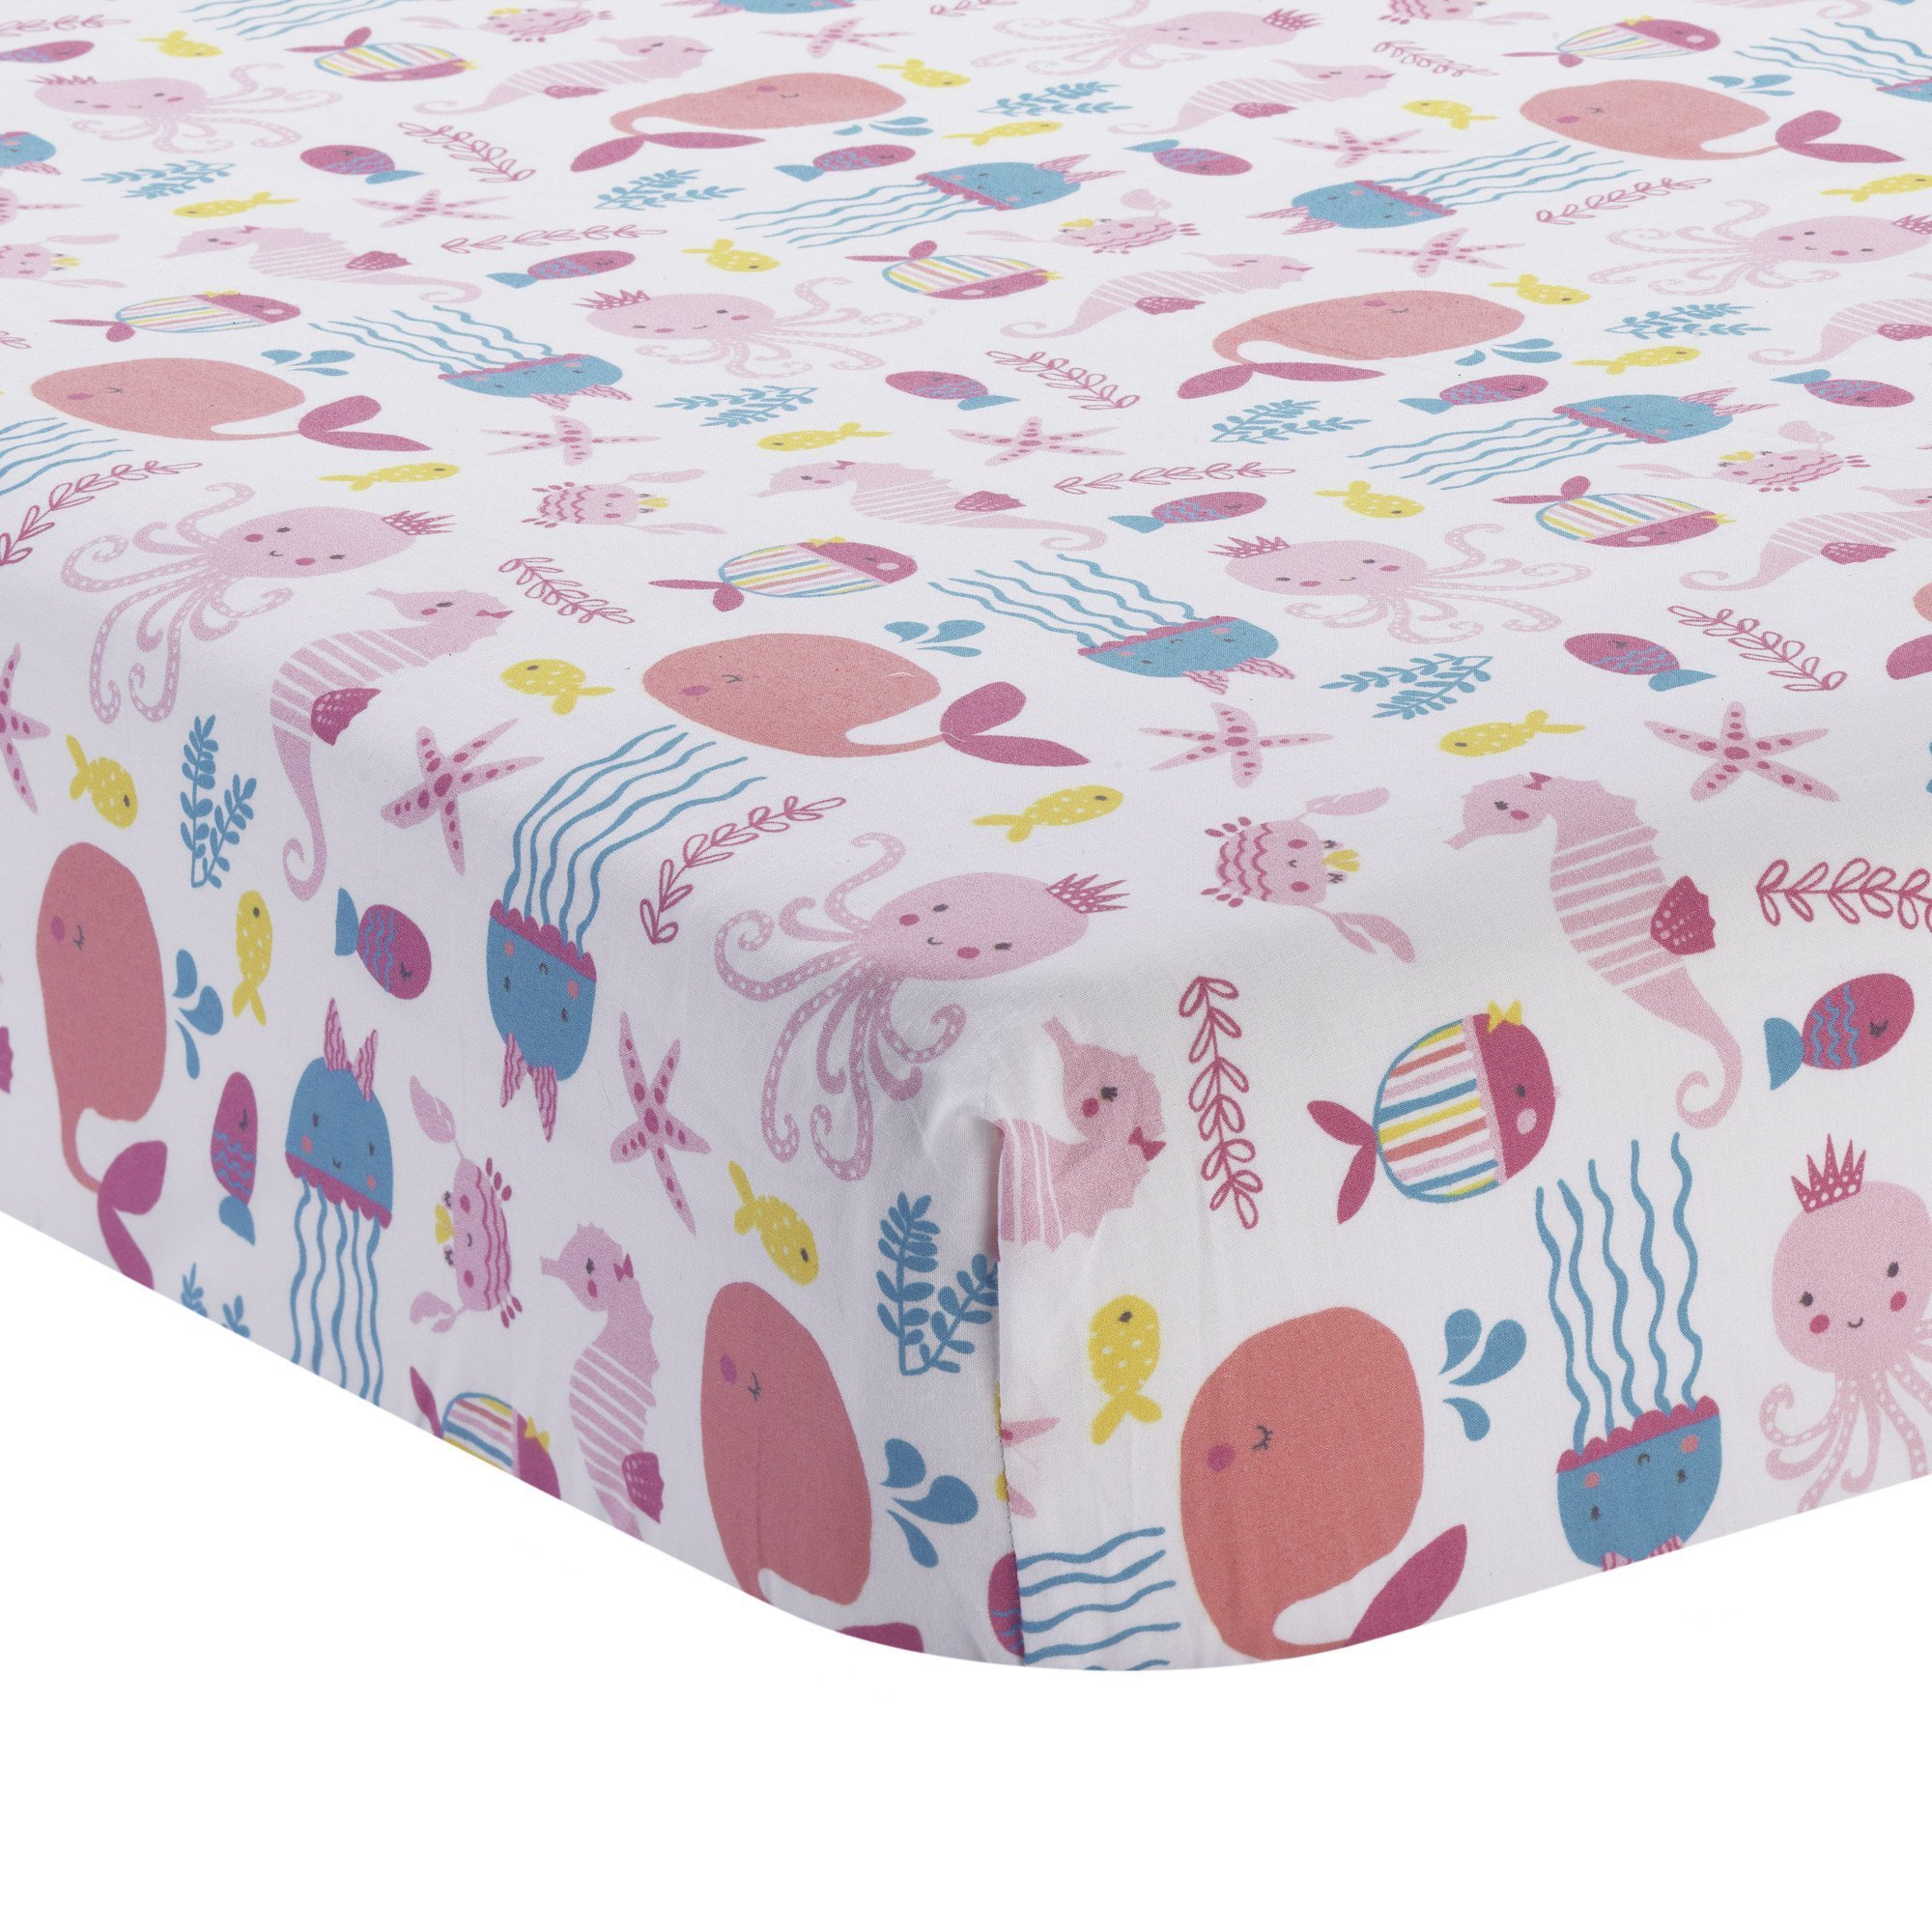 Bedtime Originals Sugar Reed Aquatic Fitted Crib Sheet, Pink/Blue